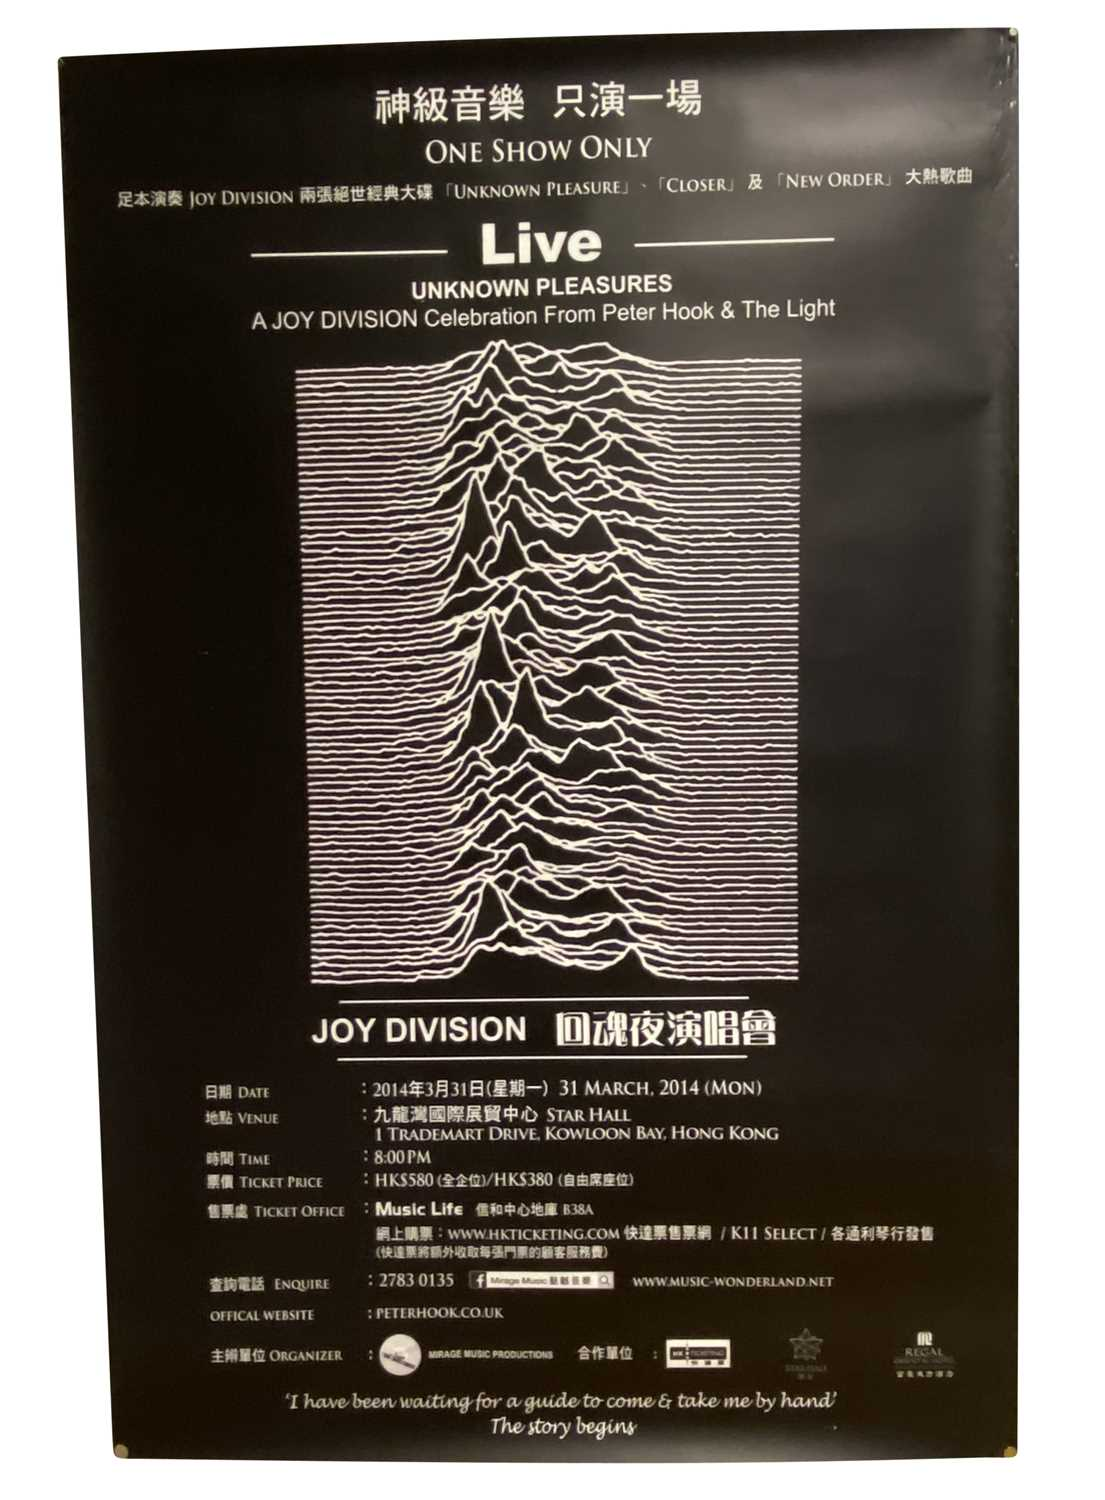 NEW ORDER & JOY DIVISION RELATED POSTERS - Image 4 of 4